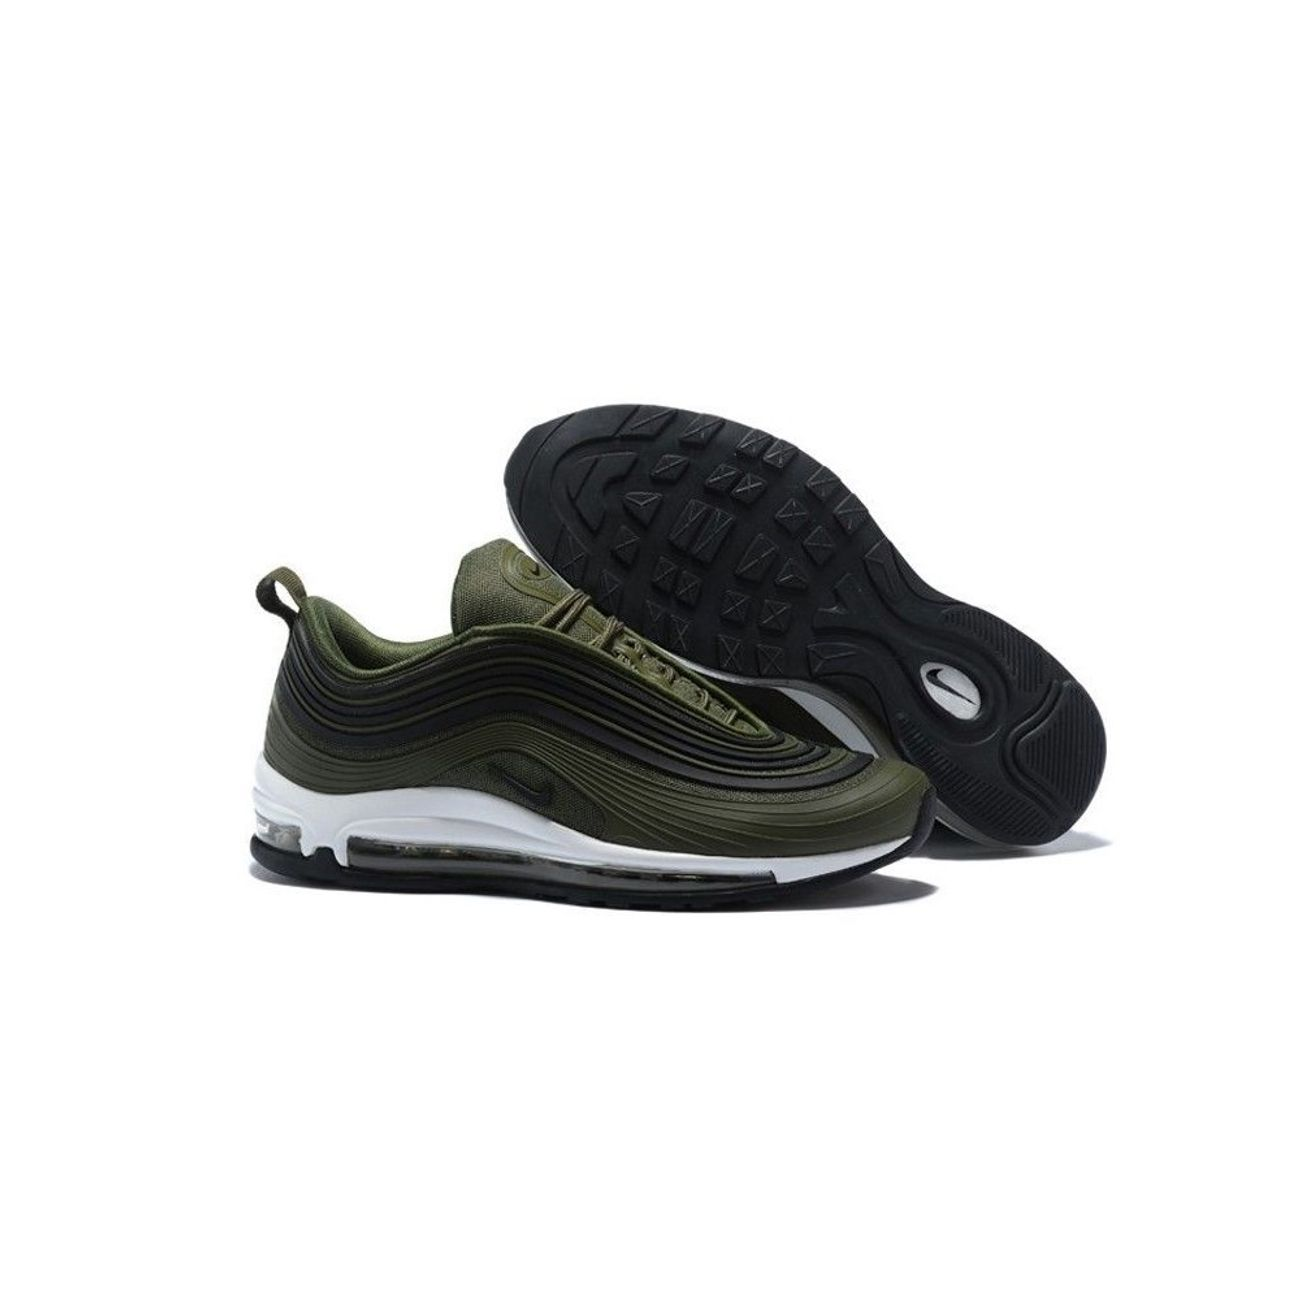 brand new c3092 8ad00 ... Mode- Lifestyle homme NIKE Basket Nike Air Max 97 Ultra 17 Premium -  AH7581- ...